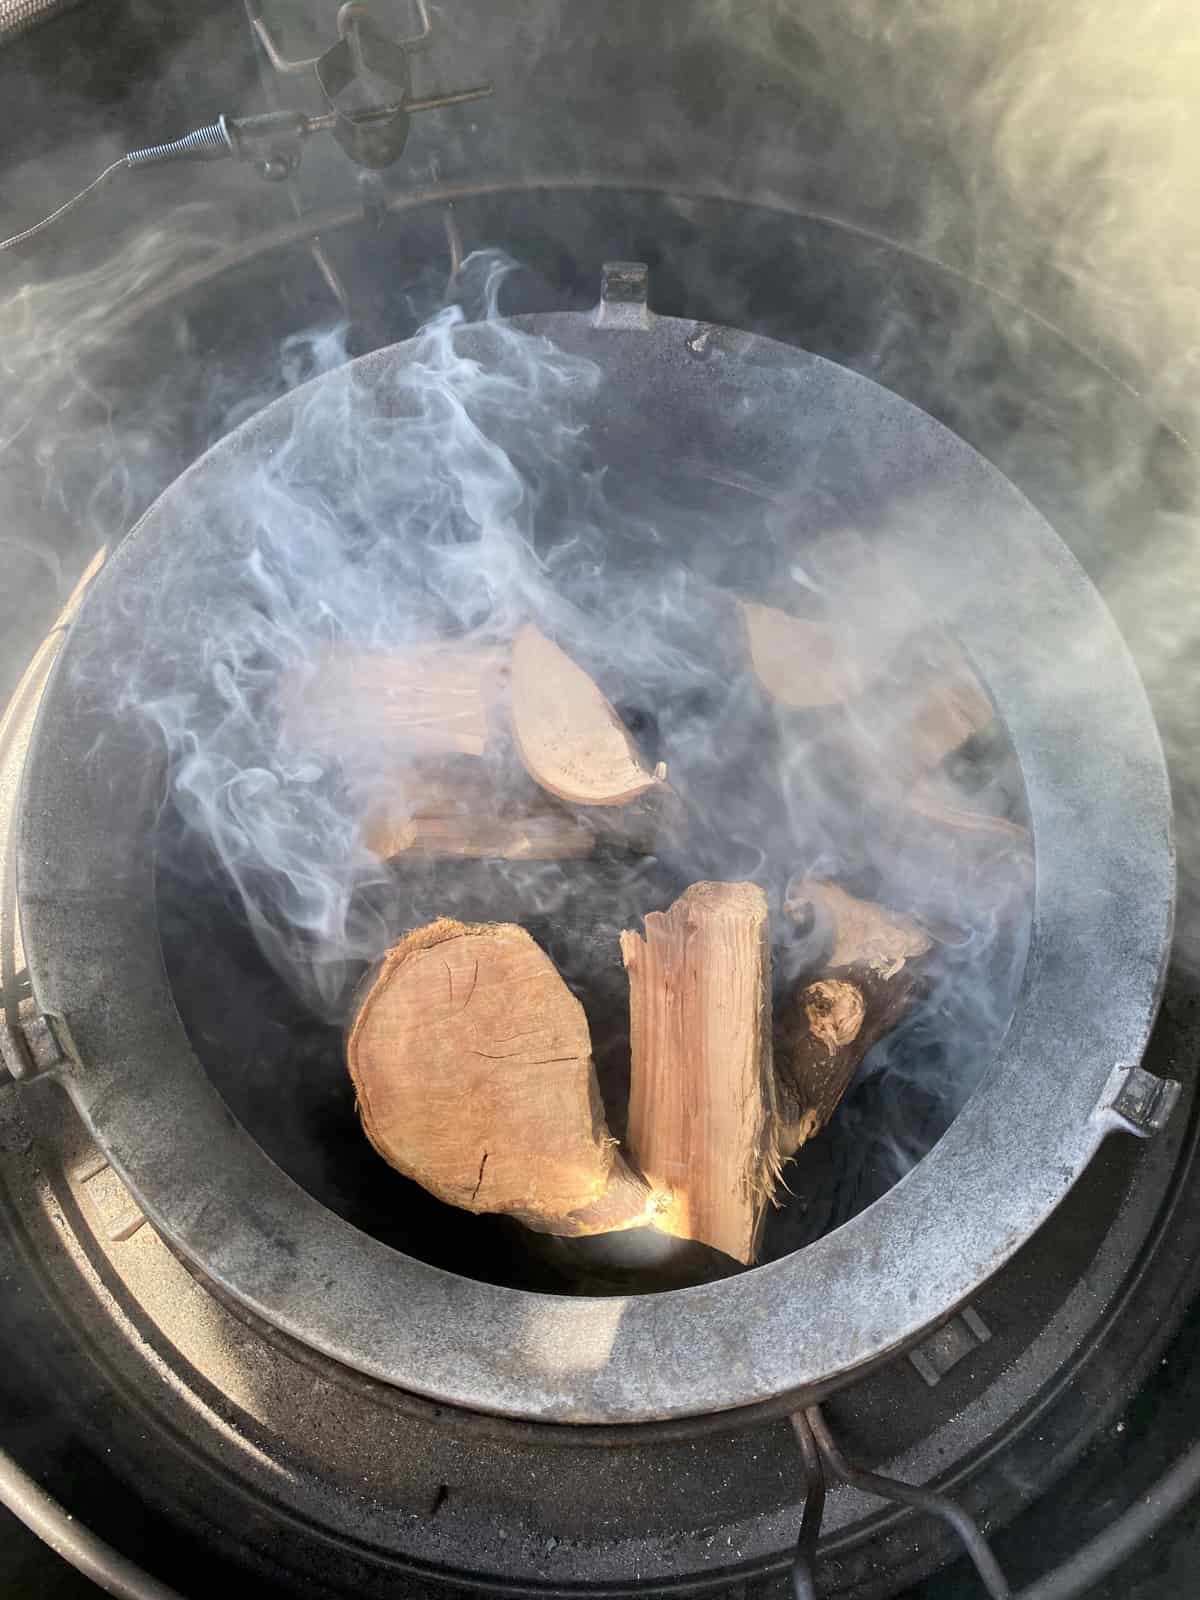 add apple and pecan wood to the belly of the ceramic grill